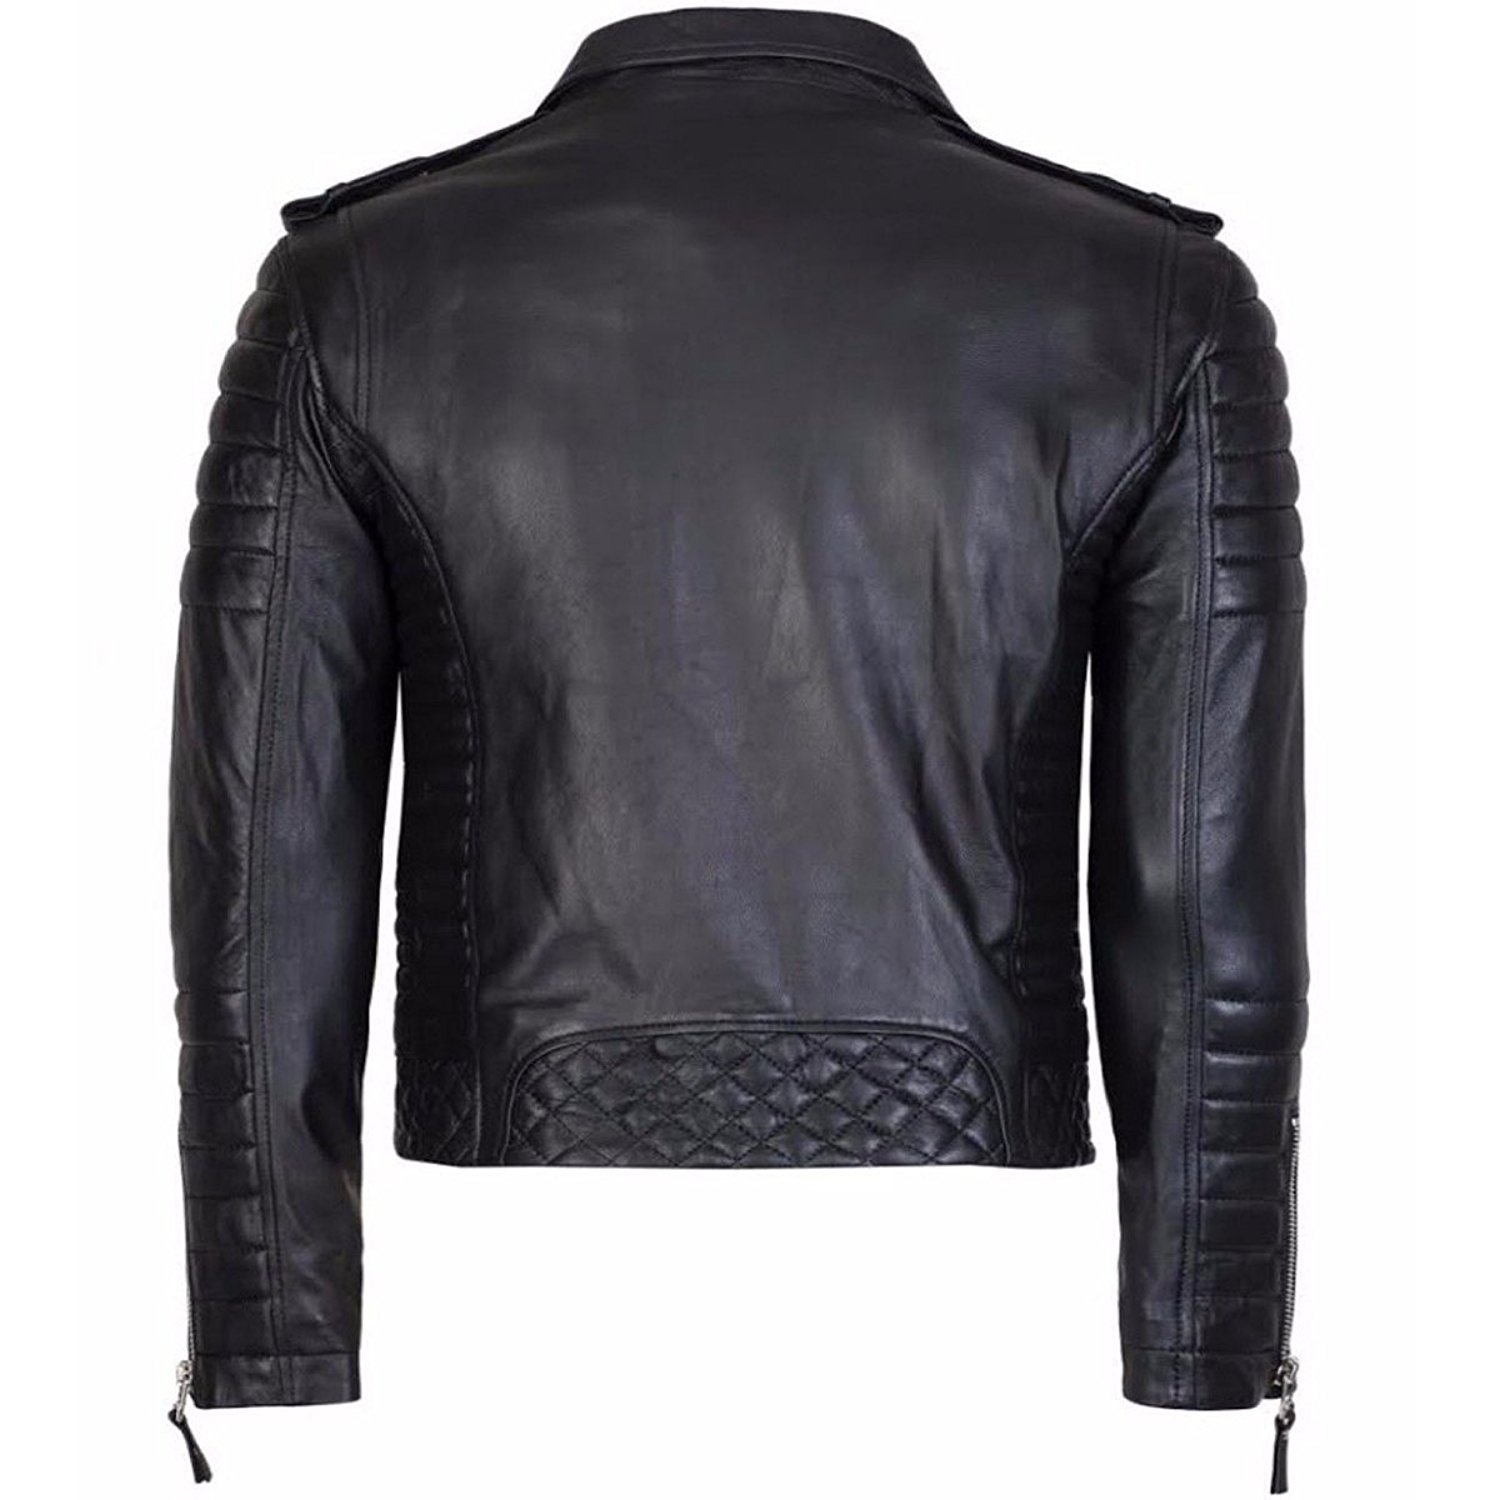 30772f61a Men's Quilted Black Diamond Style Leather Jacket at Amazon Men's ...